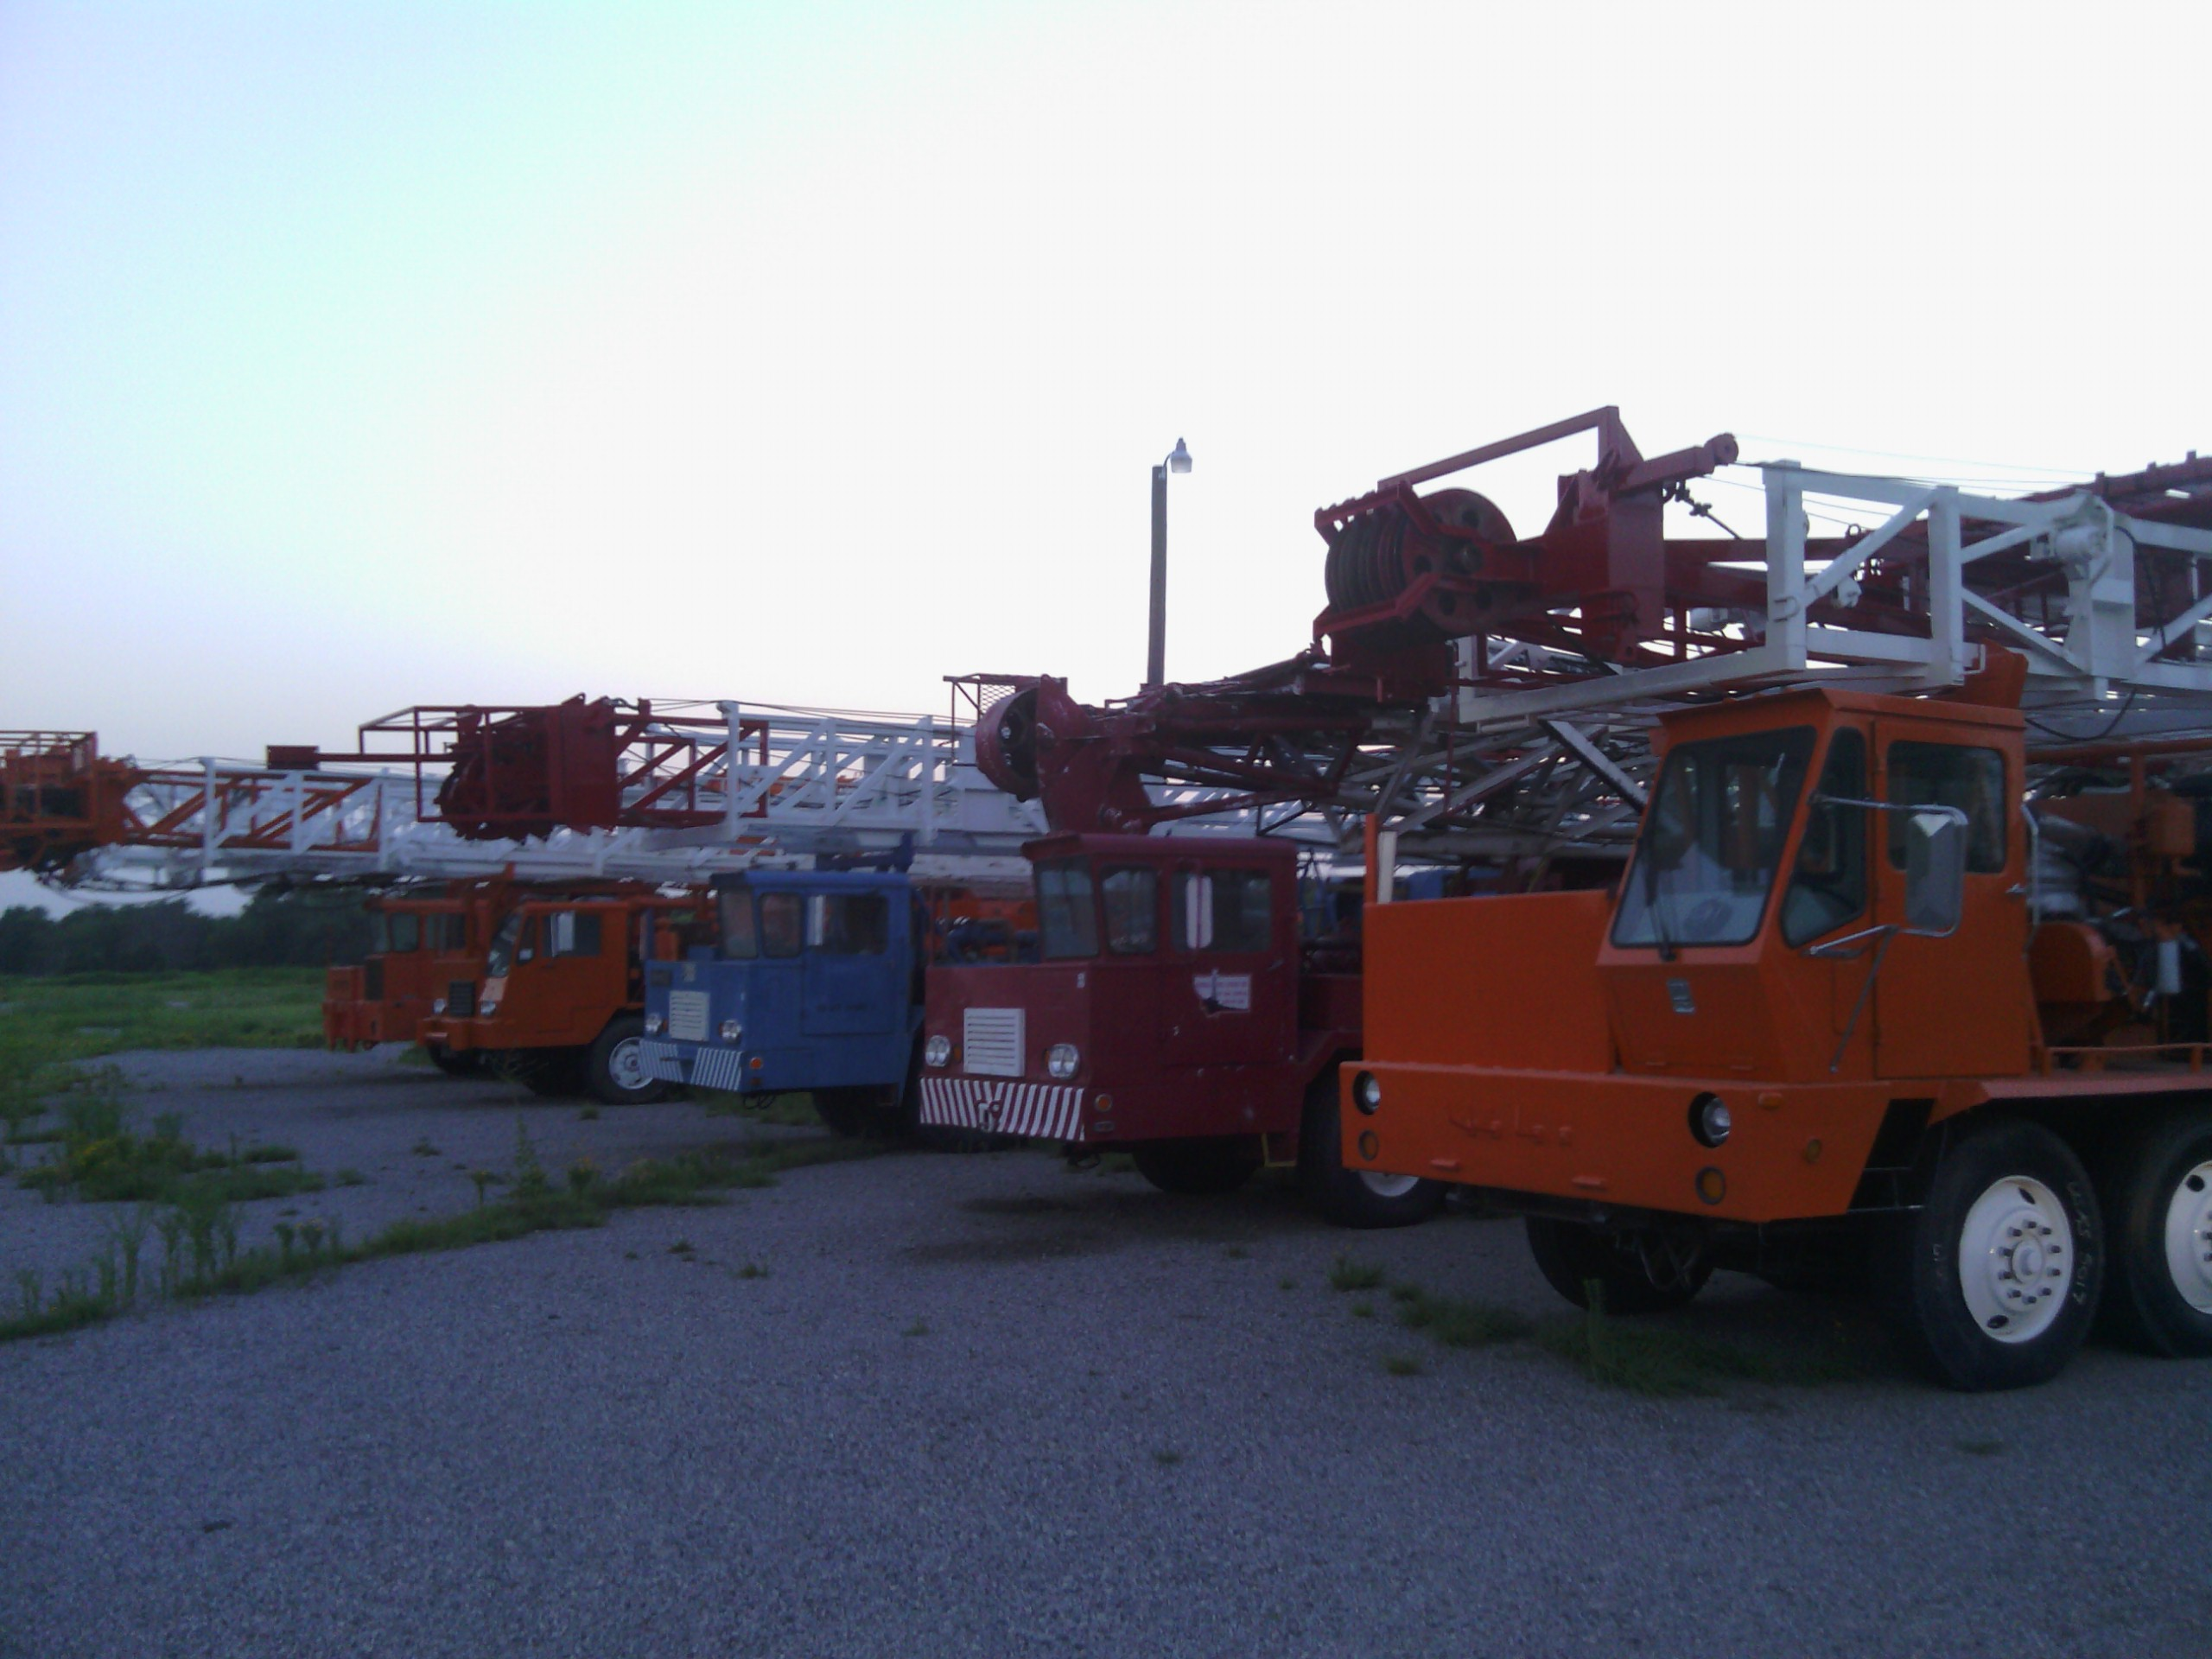 pic 17 - Drilling Rigs for Sale   Oilfield Equipment